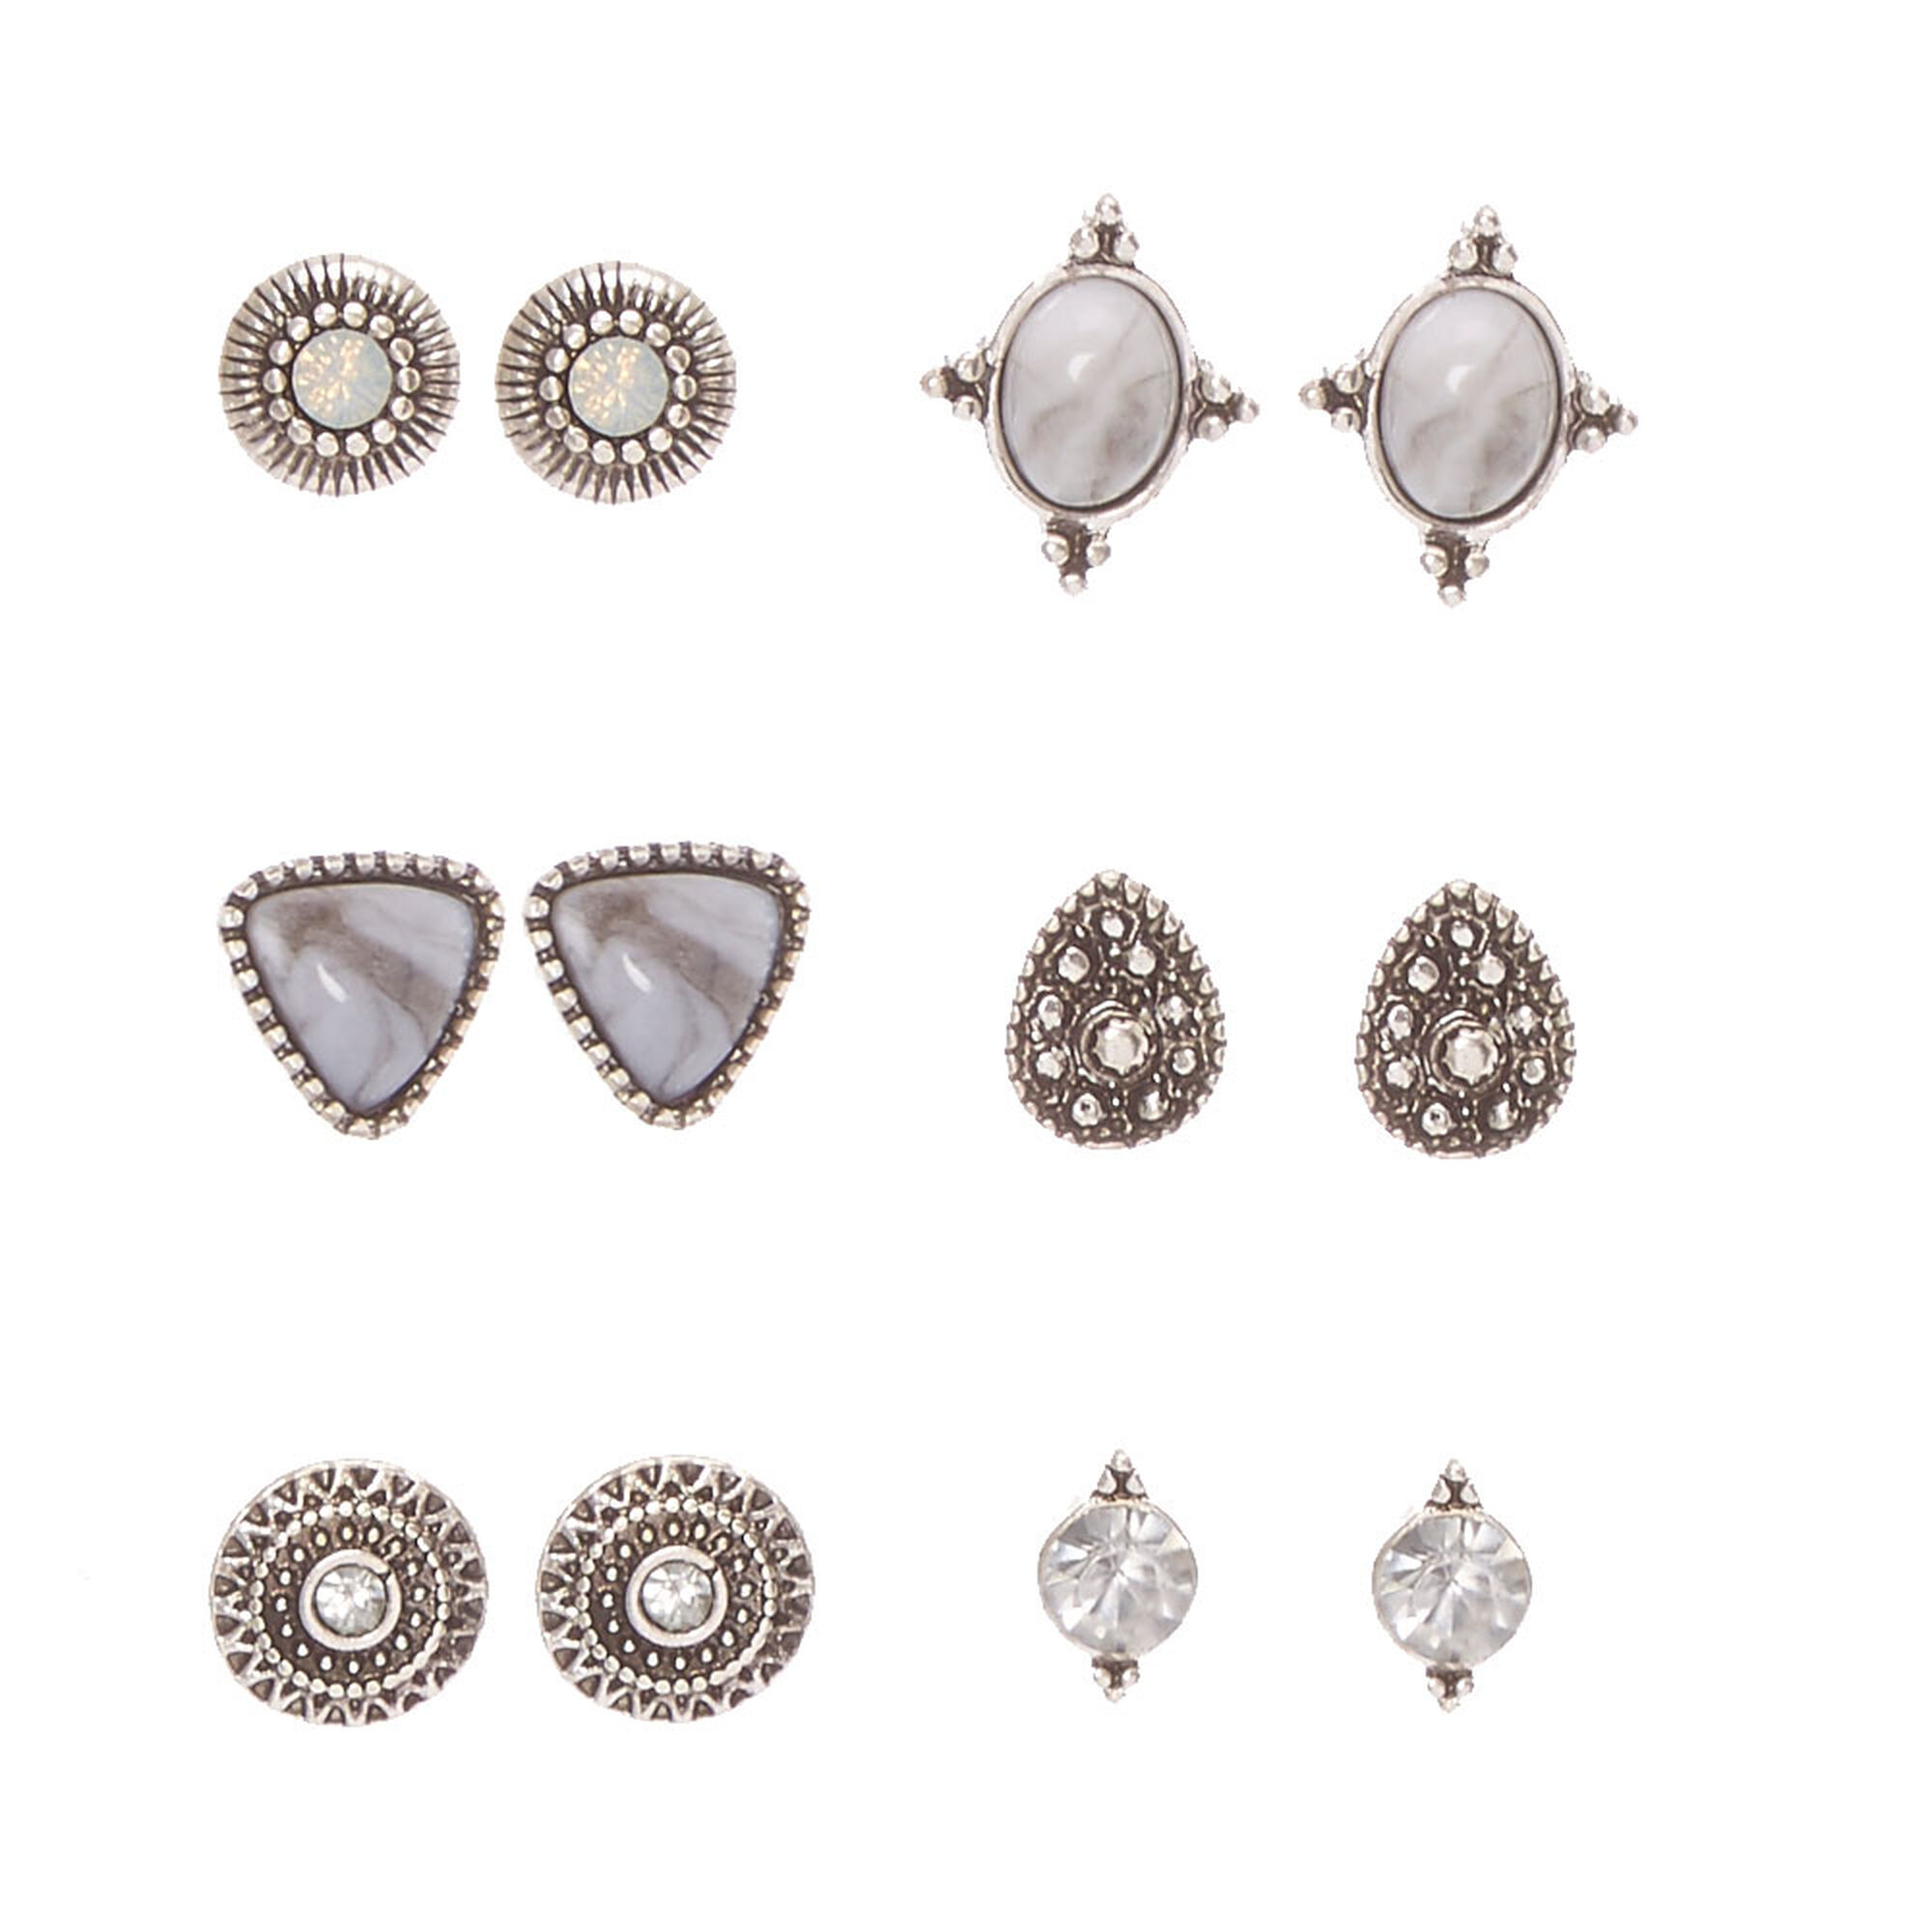 three white feature gray grams measures img a pair that in of earring exhibit vintage triangle stud earrings pearl lovely antique pearls slight the these approx weighs each by gold